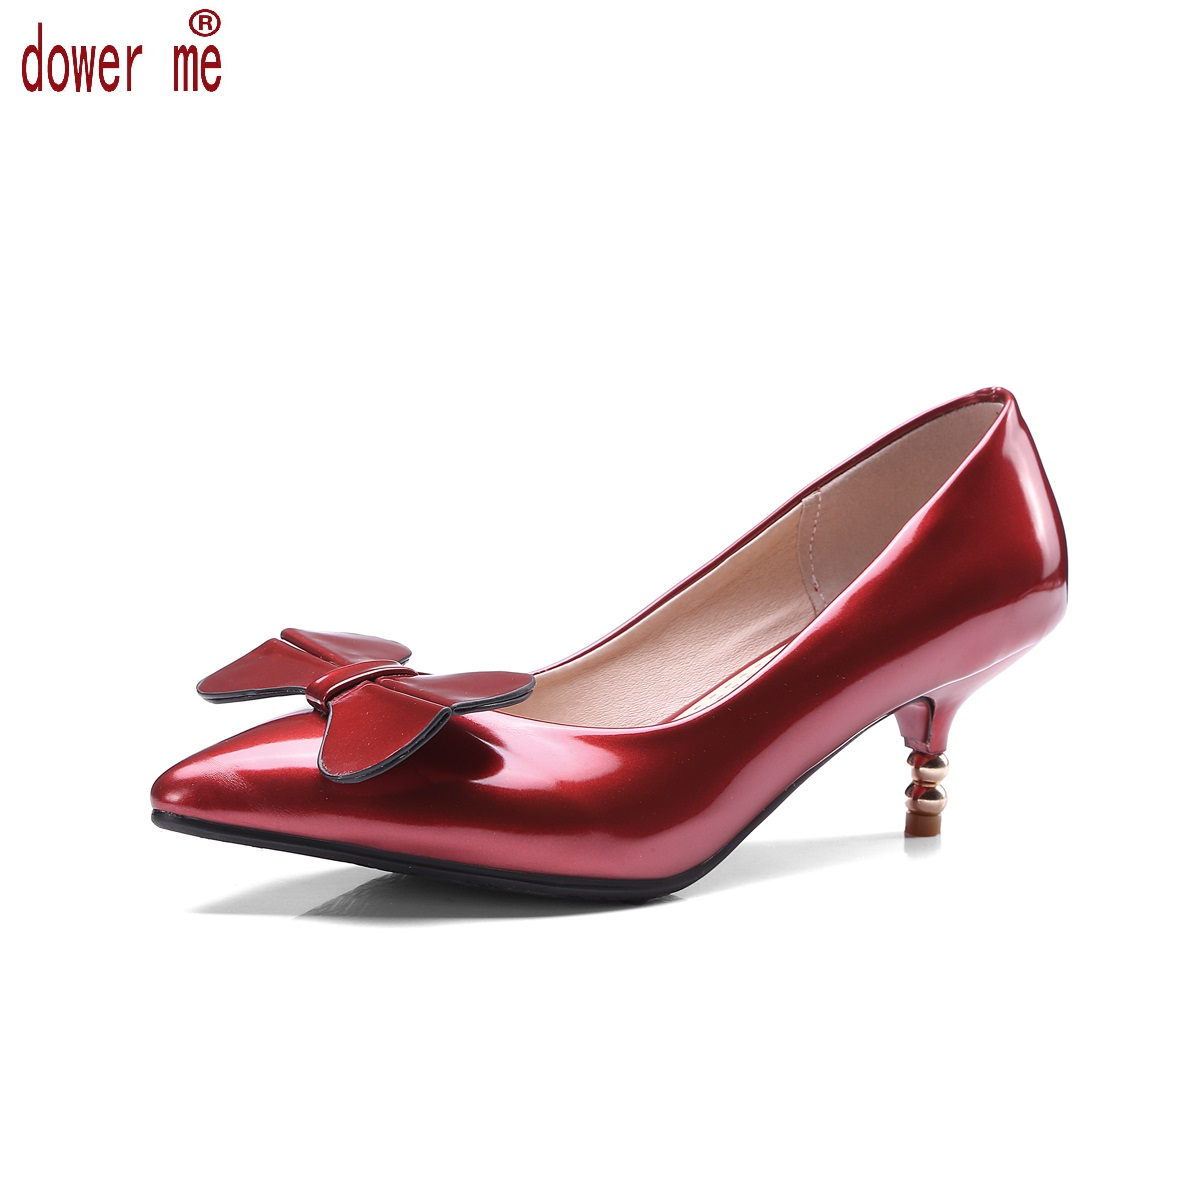 Big Size 43 New Fashion Shoes Woman Spring/autumn Pu Leather Pump Shoes Women Thin High Heels Pointed Toe Party Zapatos Mujer 2017 new spring autumn big size 11 12 dress sweet wedges women shoes pointed toe woman ladies womens